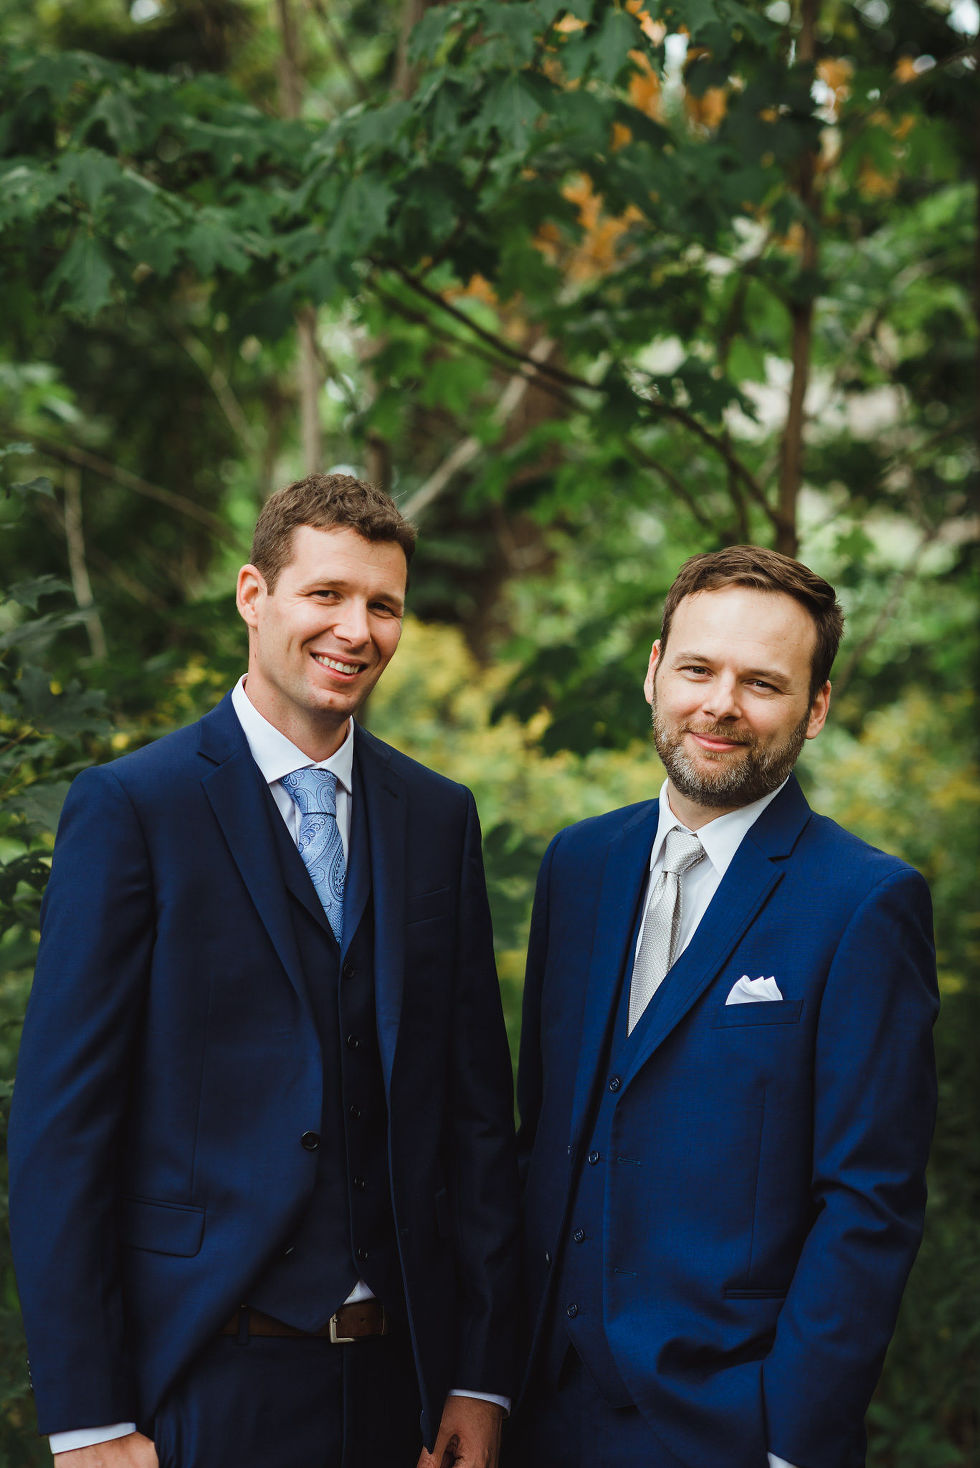 groom and best man standing next to each other in blue suits in the gardens of La Paletta Mansion in Burlington Ontario